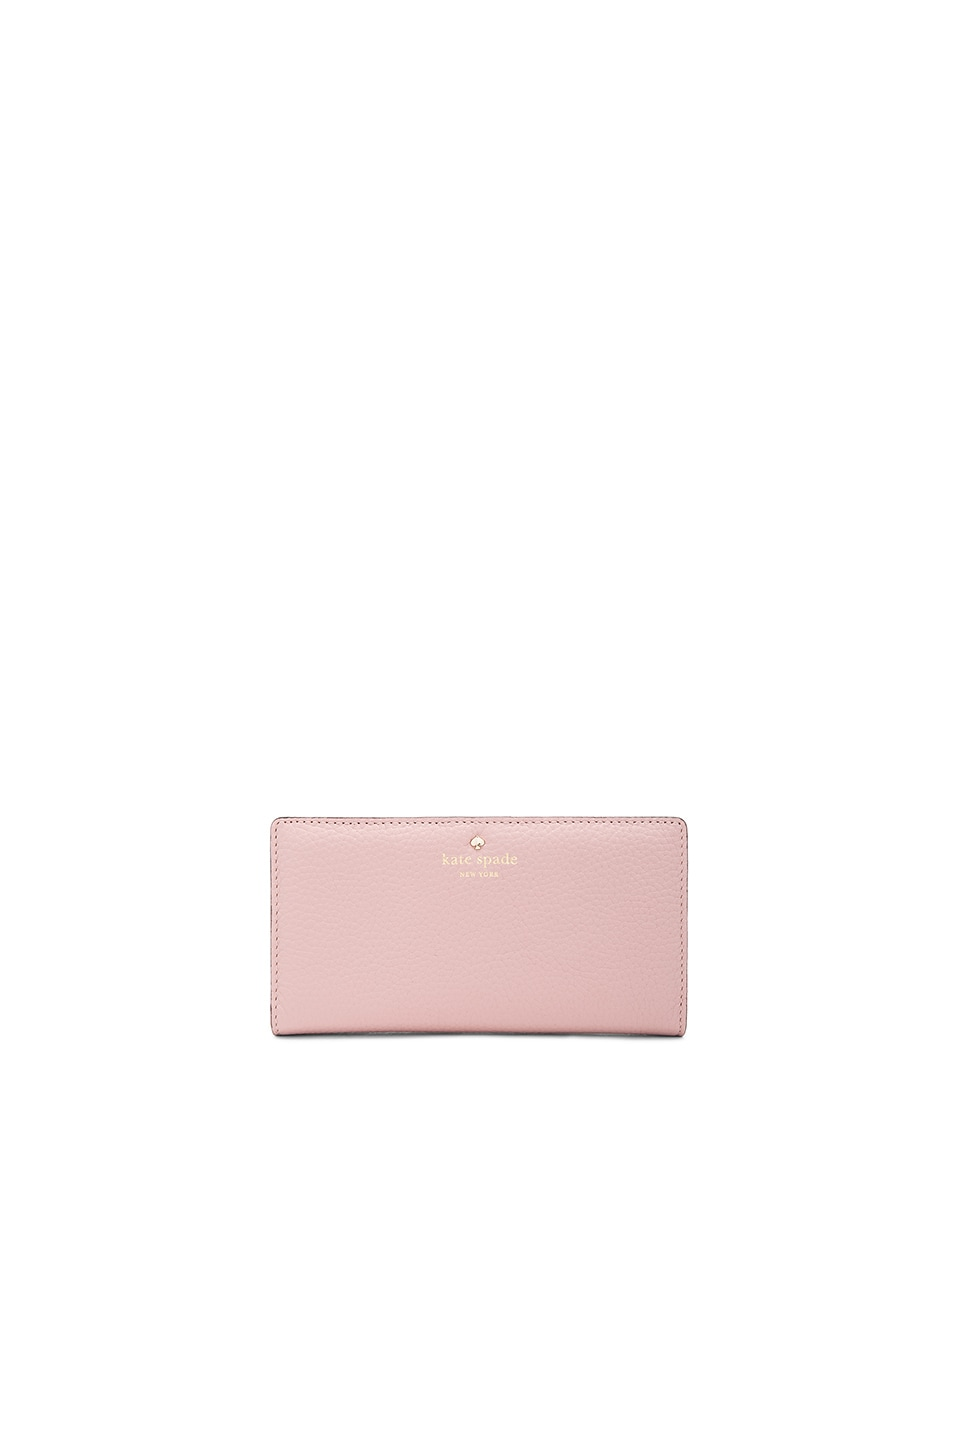 Stacy Wallet at REVOLVE